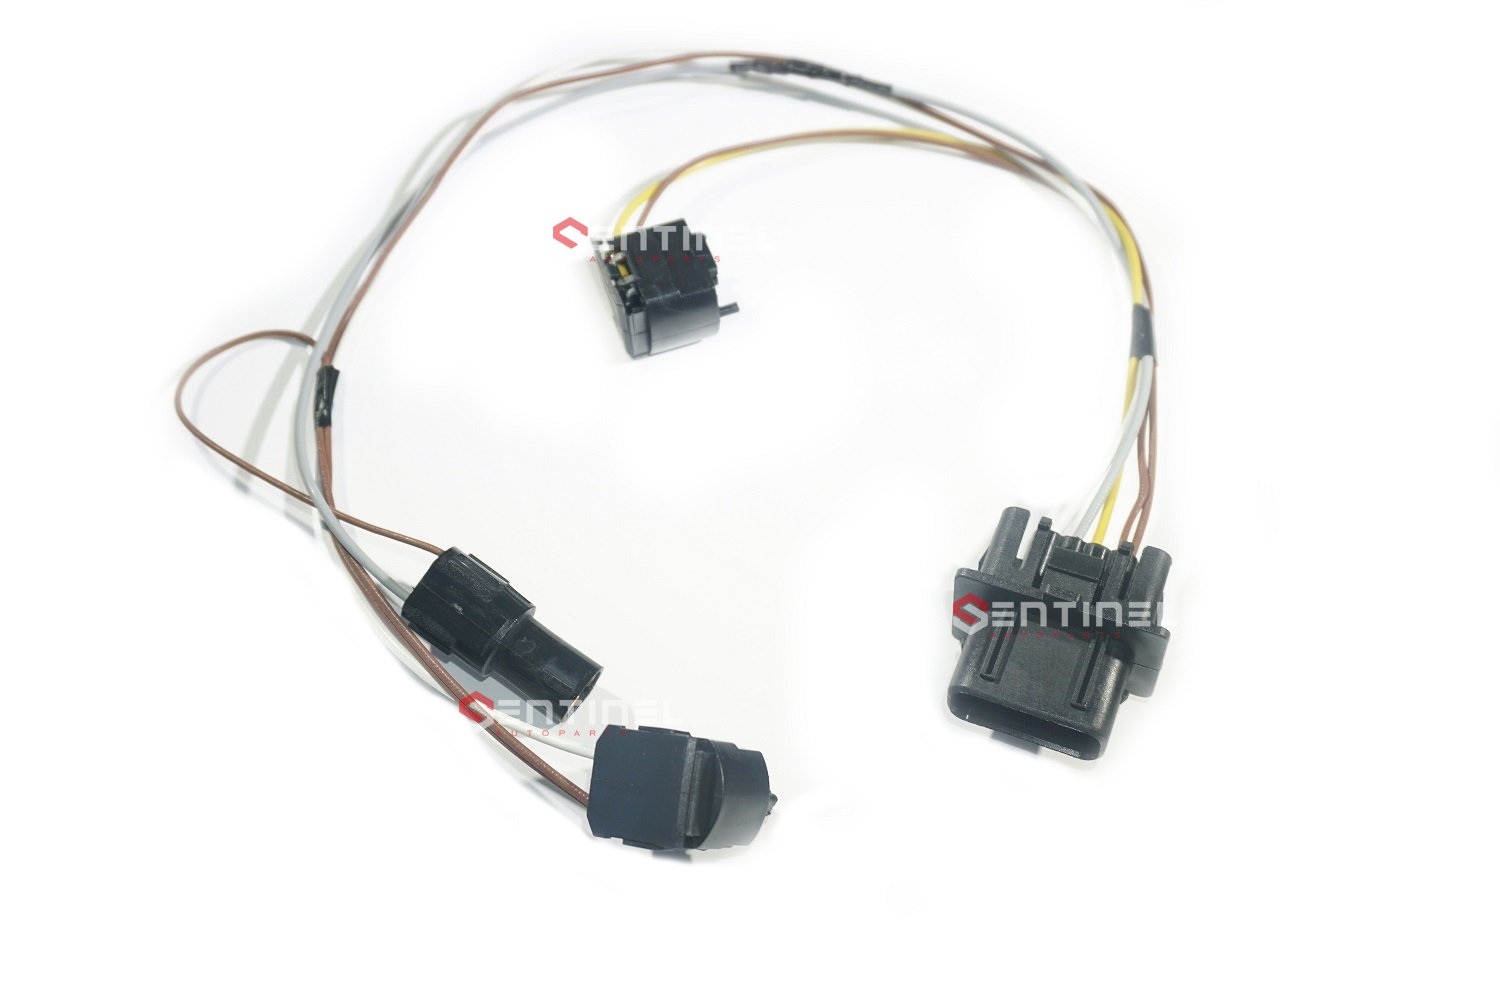 61UxevPG0vL._SL1500_ amazon com sentinel parts b360 99 03 mercedes w210 headlight wire OEM Wiring Harness Connectors at eliteediting.co